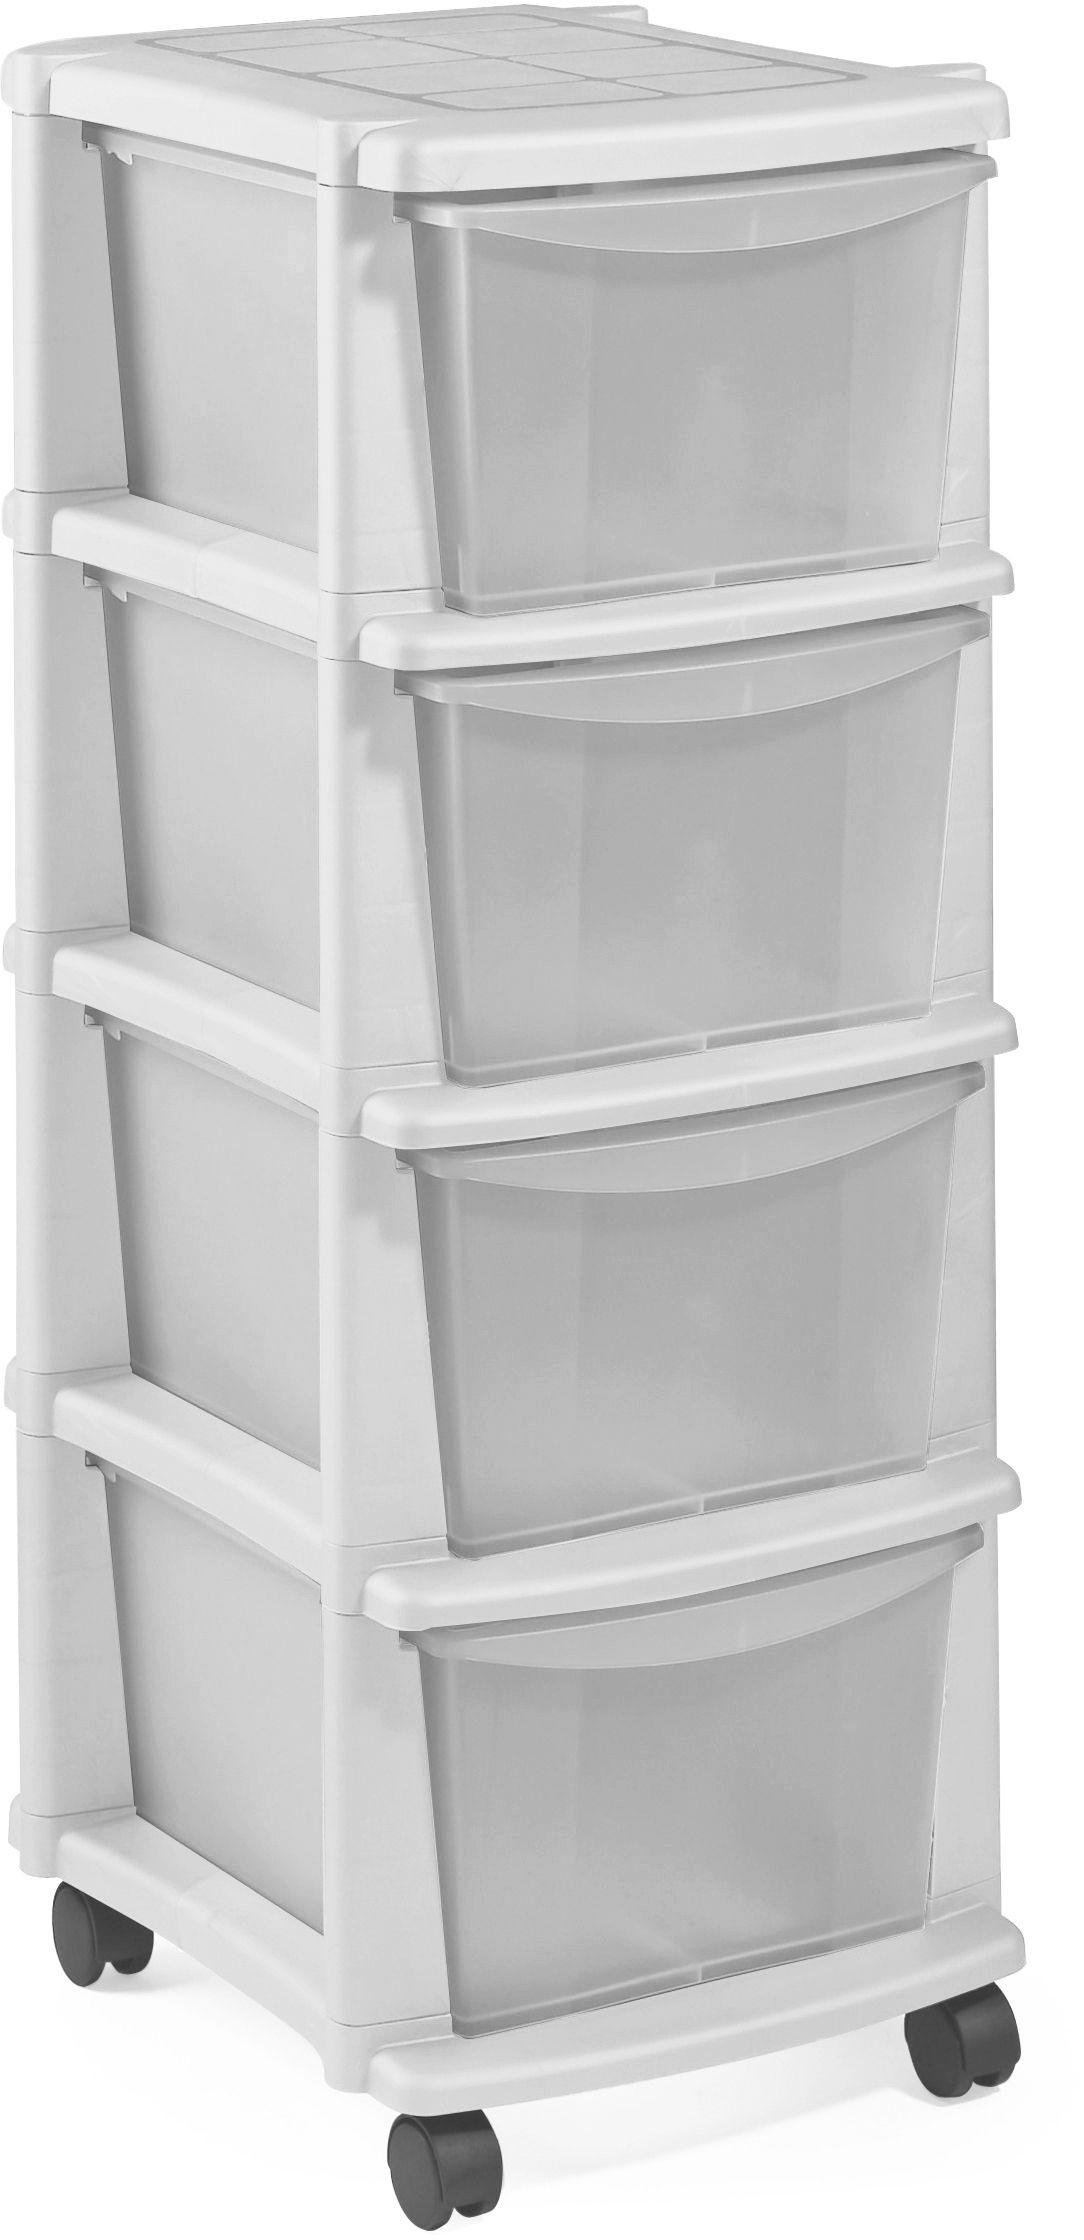 Argos Home 4 Drawer White Plastic Tower Storage Unit  sc 1 st  Argos & Plastic storage boxes and units | Argos